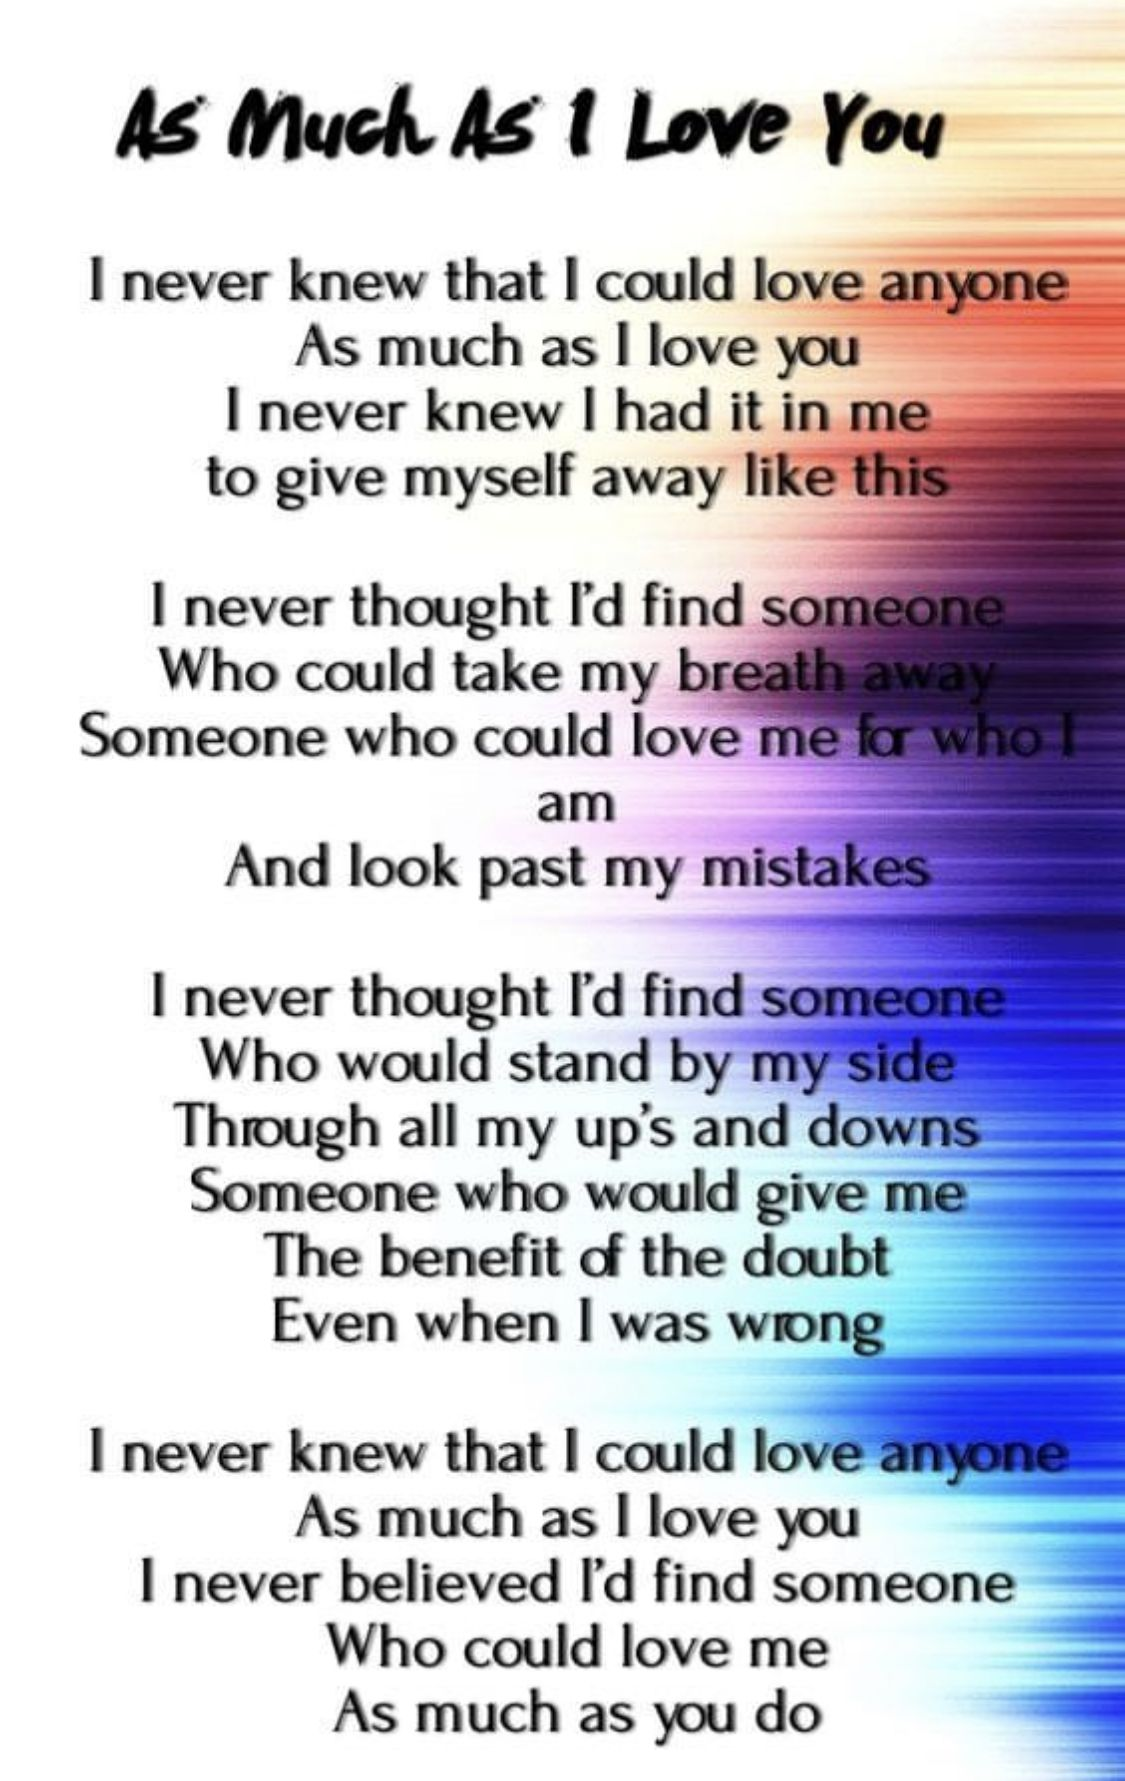 Pin by Beth on Amazing Life Quotes in 2020 | Love poem for